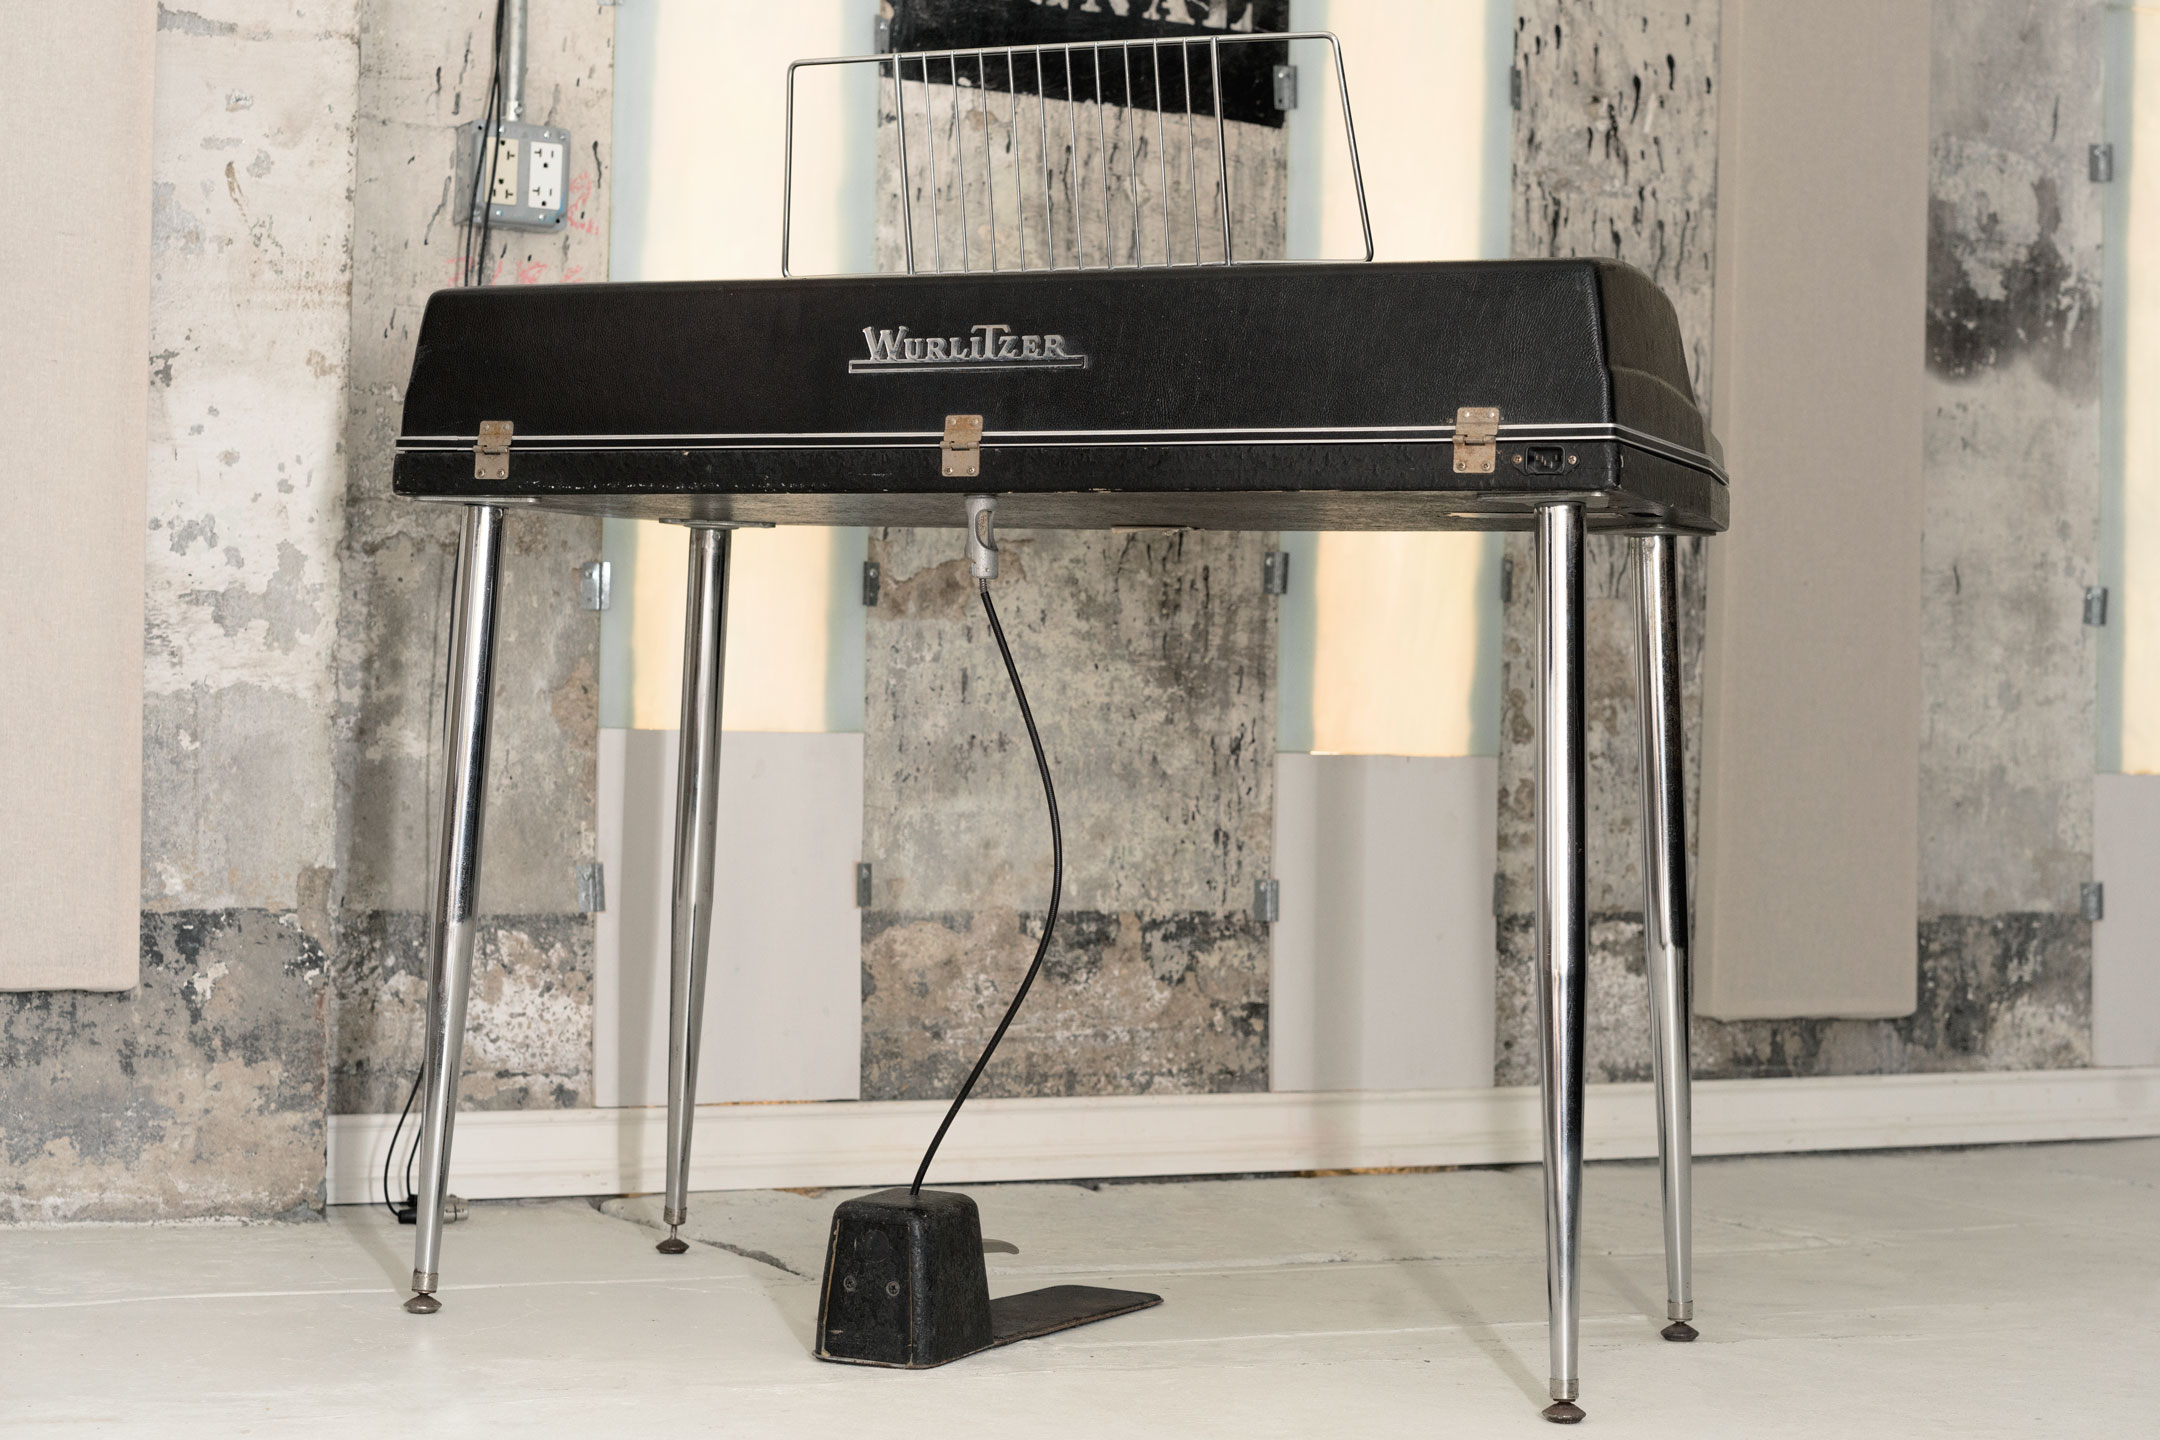 Wurlitzer 200a electronic piano rear view